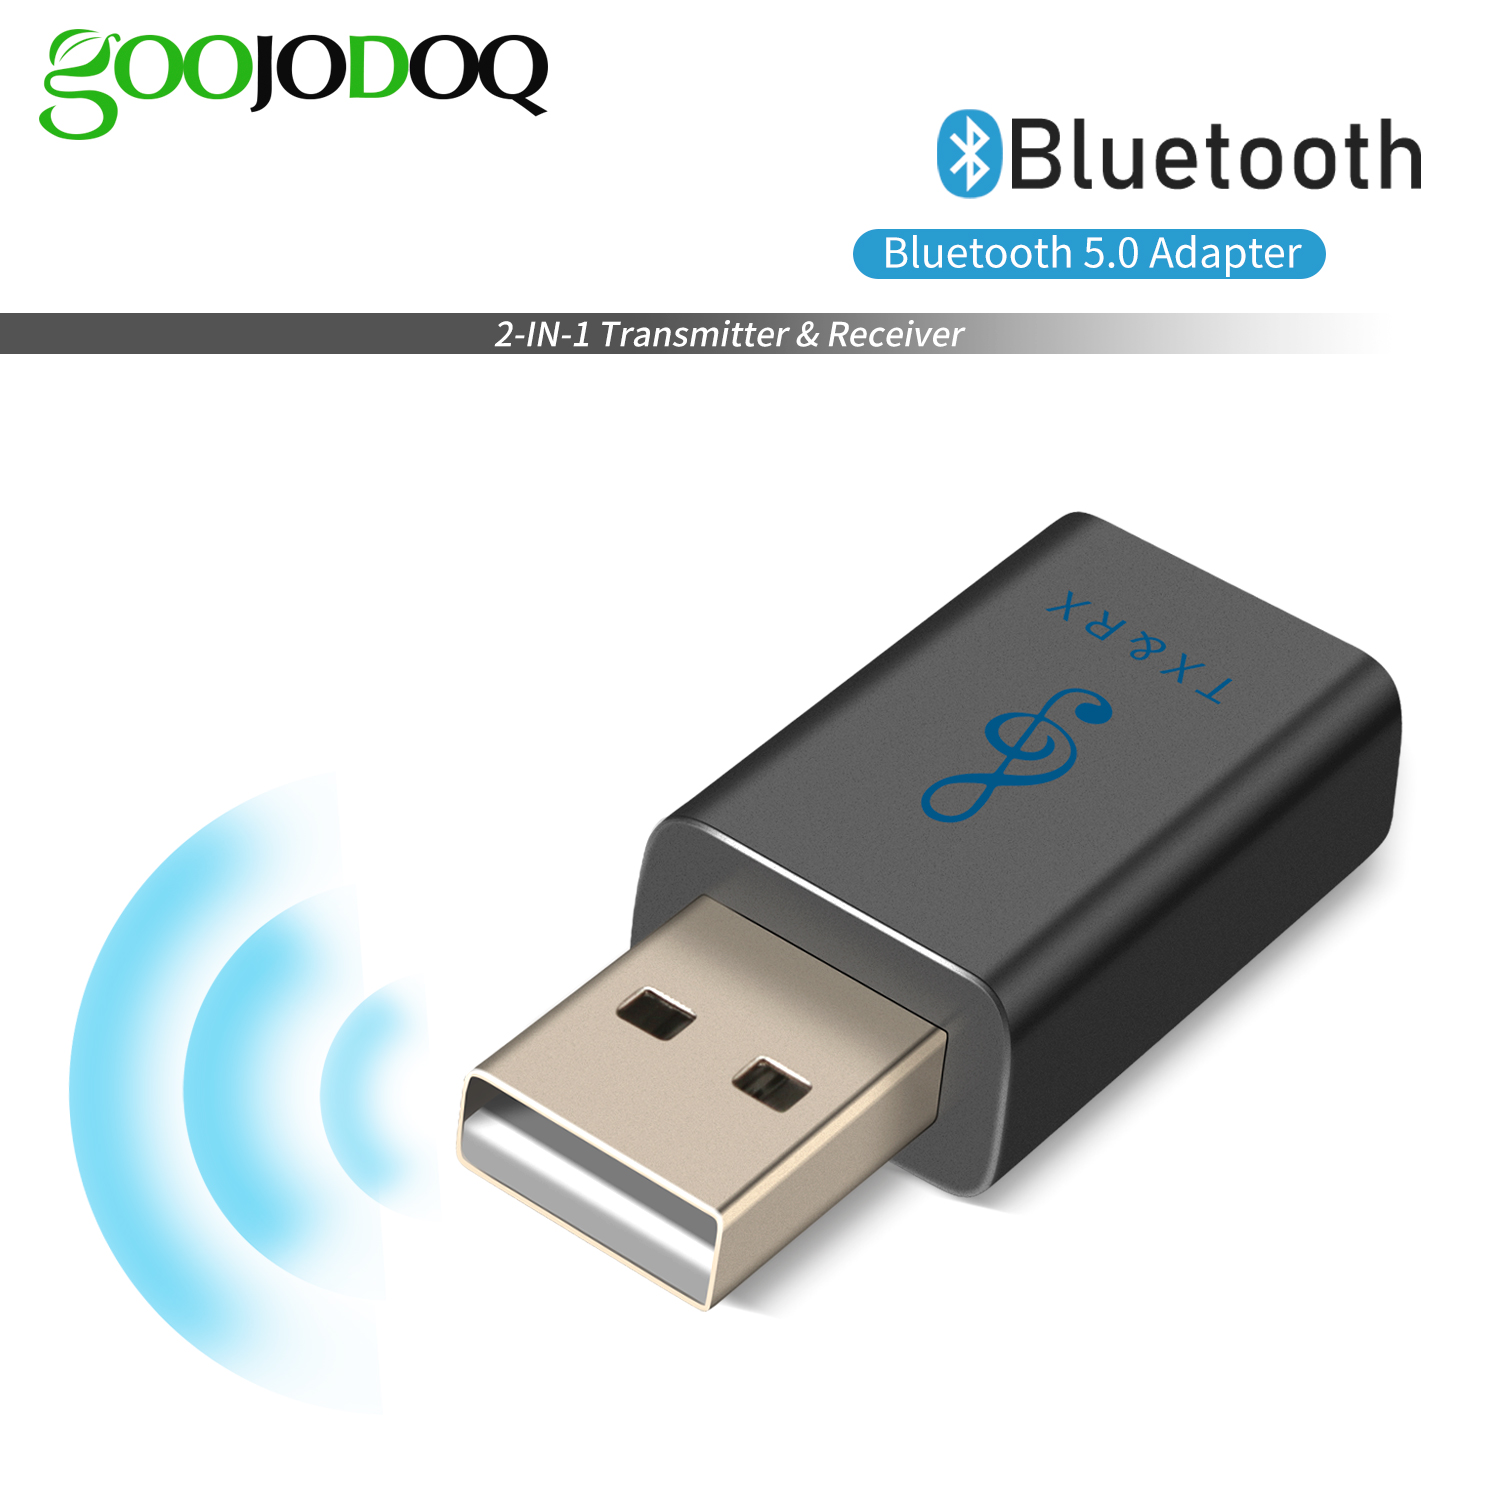 USB Bluetooth Transmitter Receiver 2 IN 1 Mini Bluetooth 5.0 Wireless 3.5mm AUX Stereo Audio Adapter For TV PC Car Music